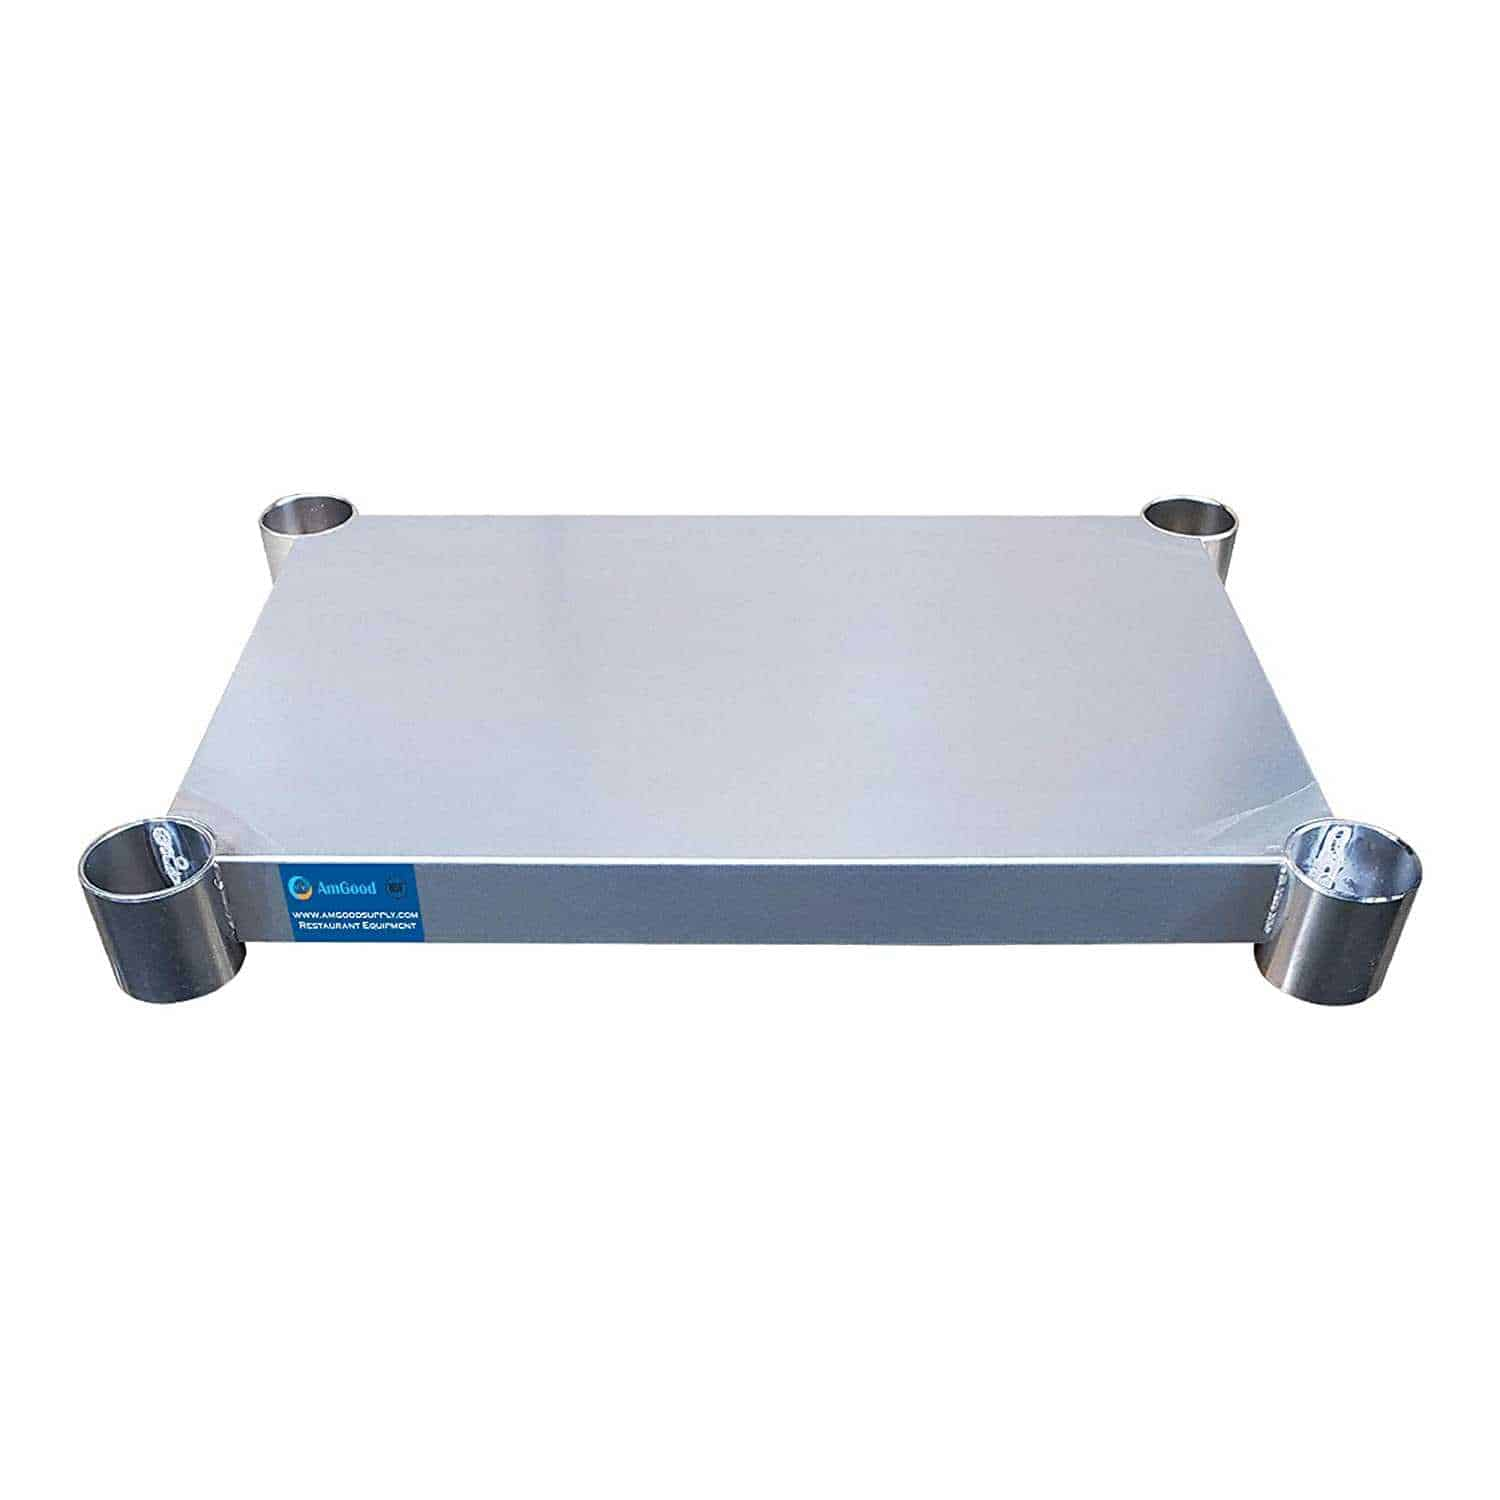 Additional Undershelf for 14″ x 24″ Stainless Steel Work Table